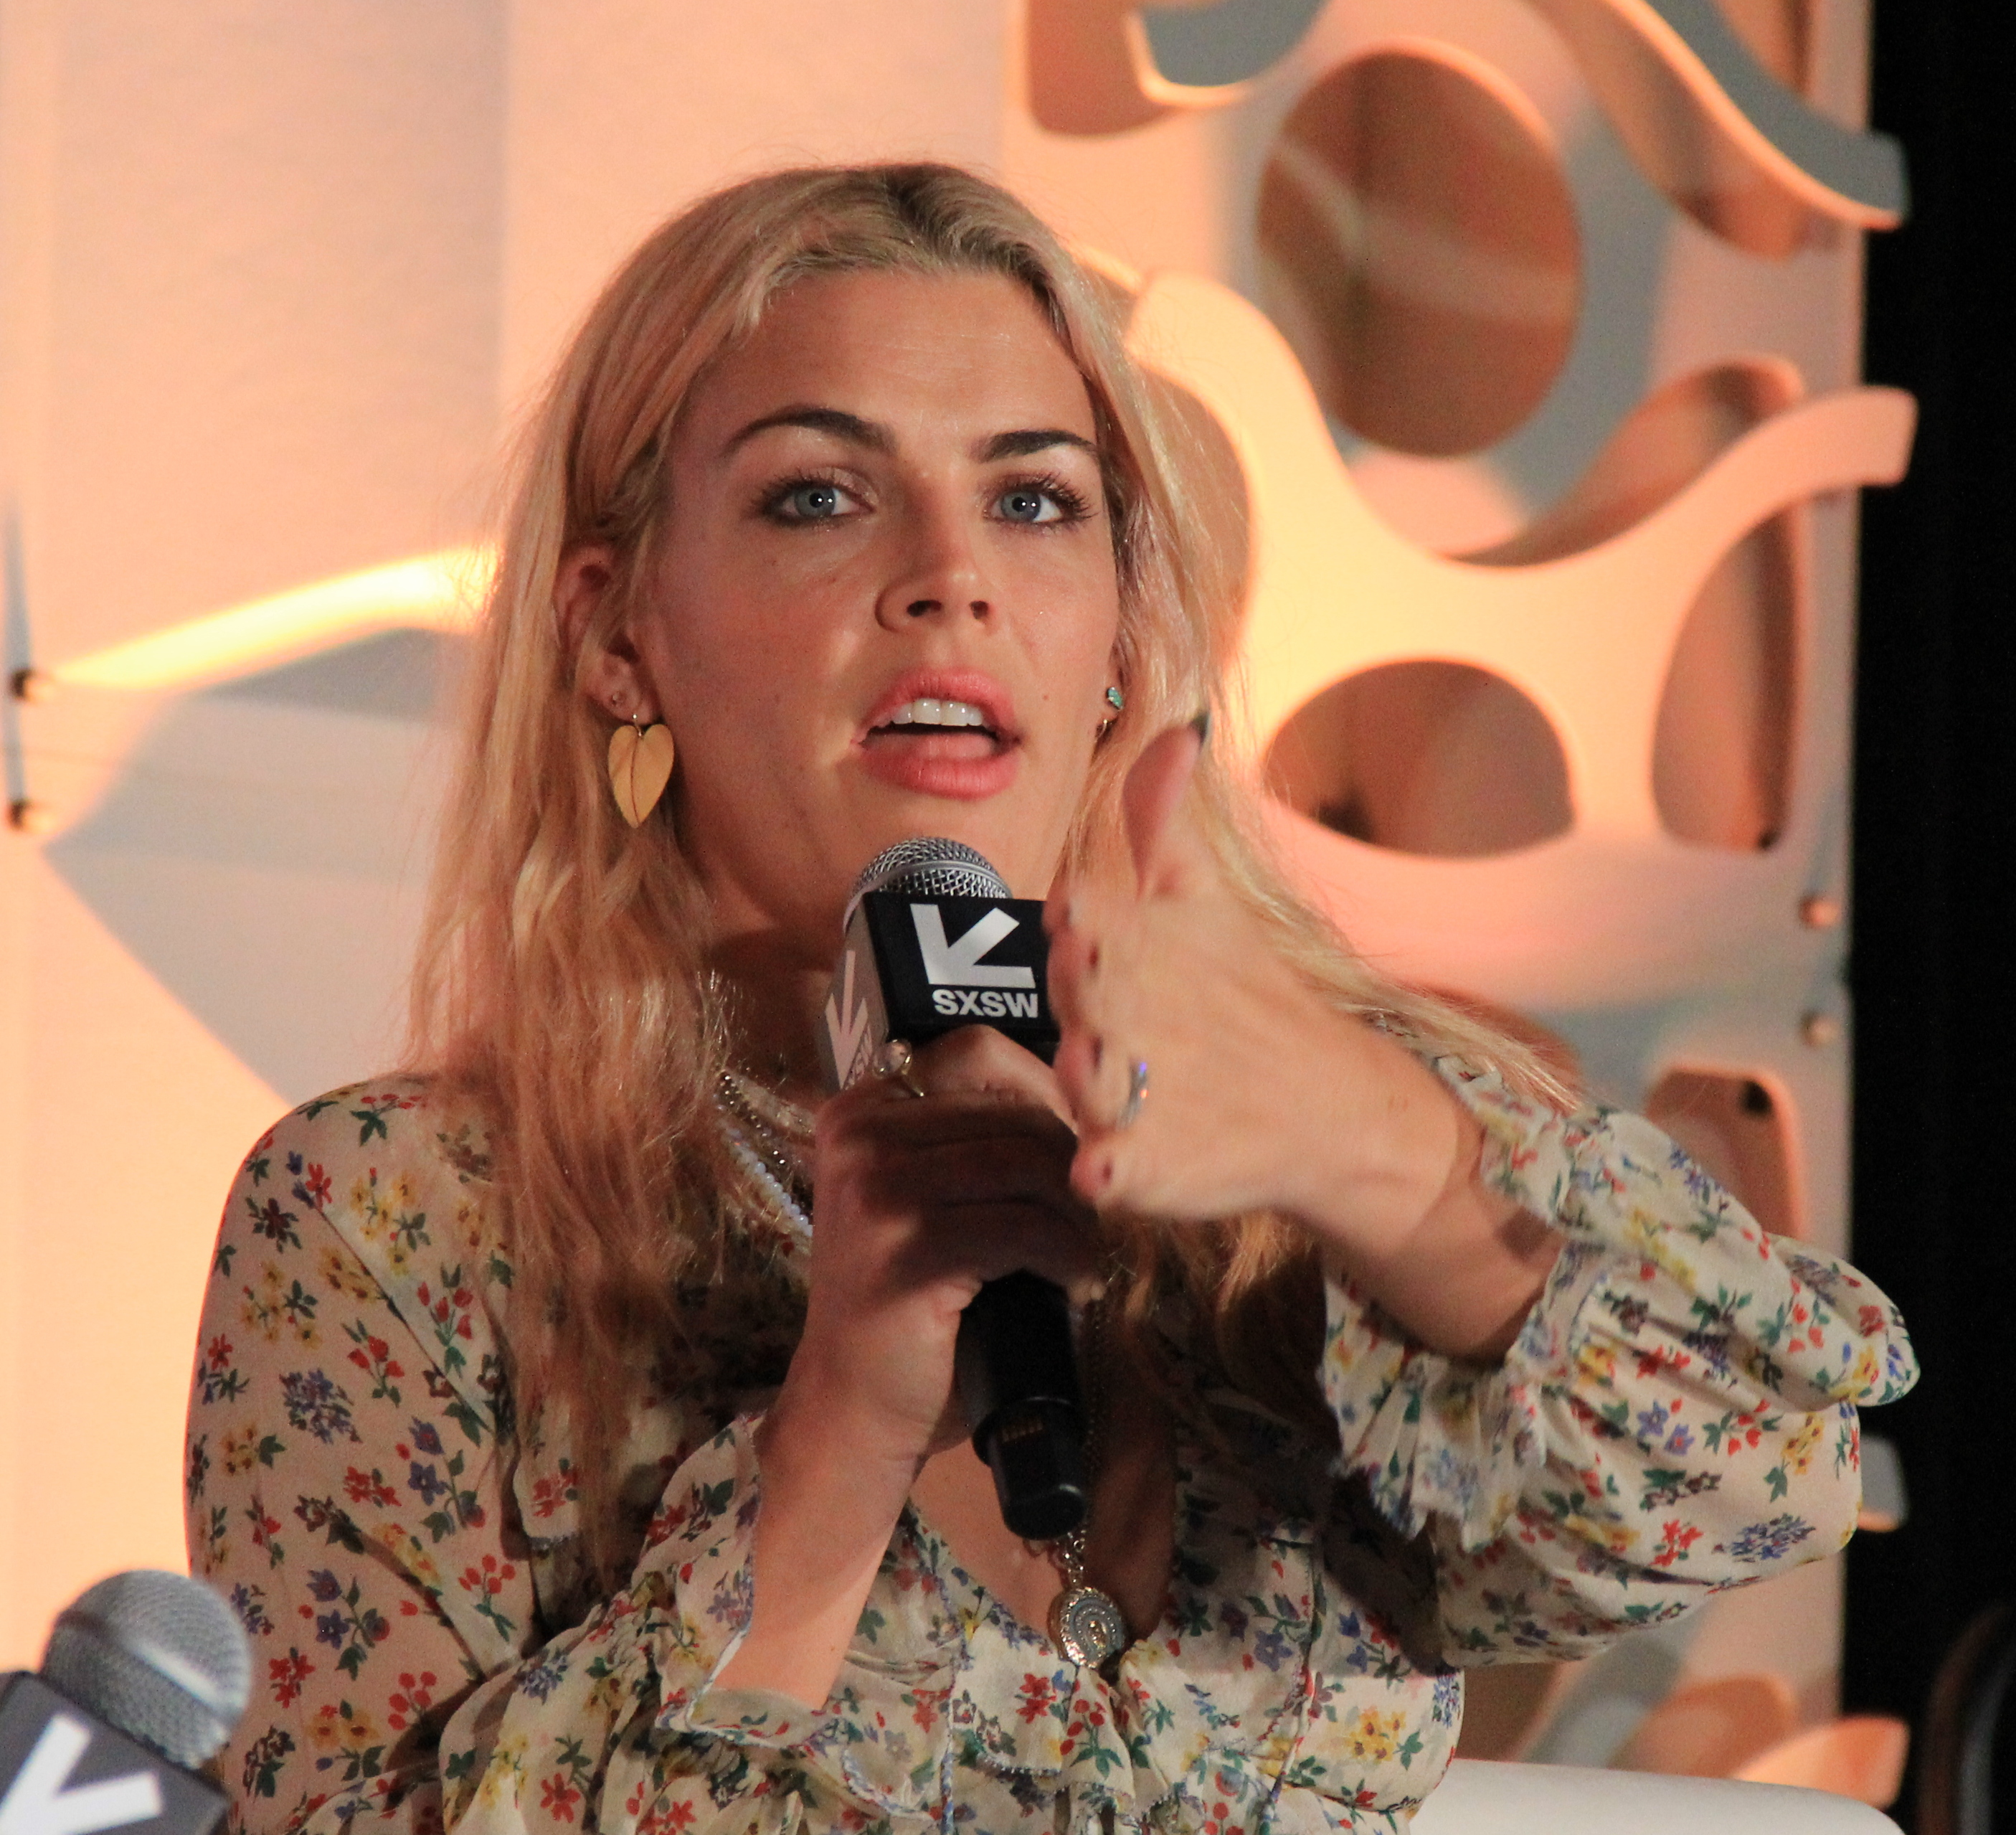 Busy Philipps freaks and geeks